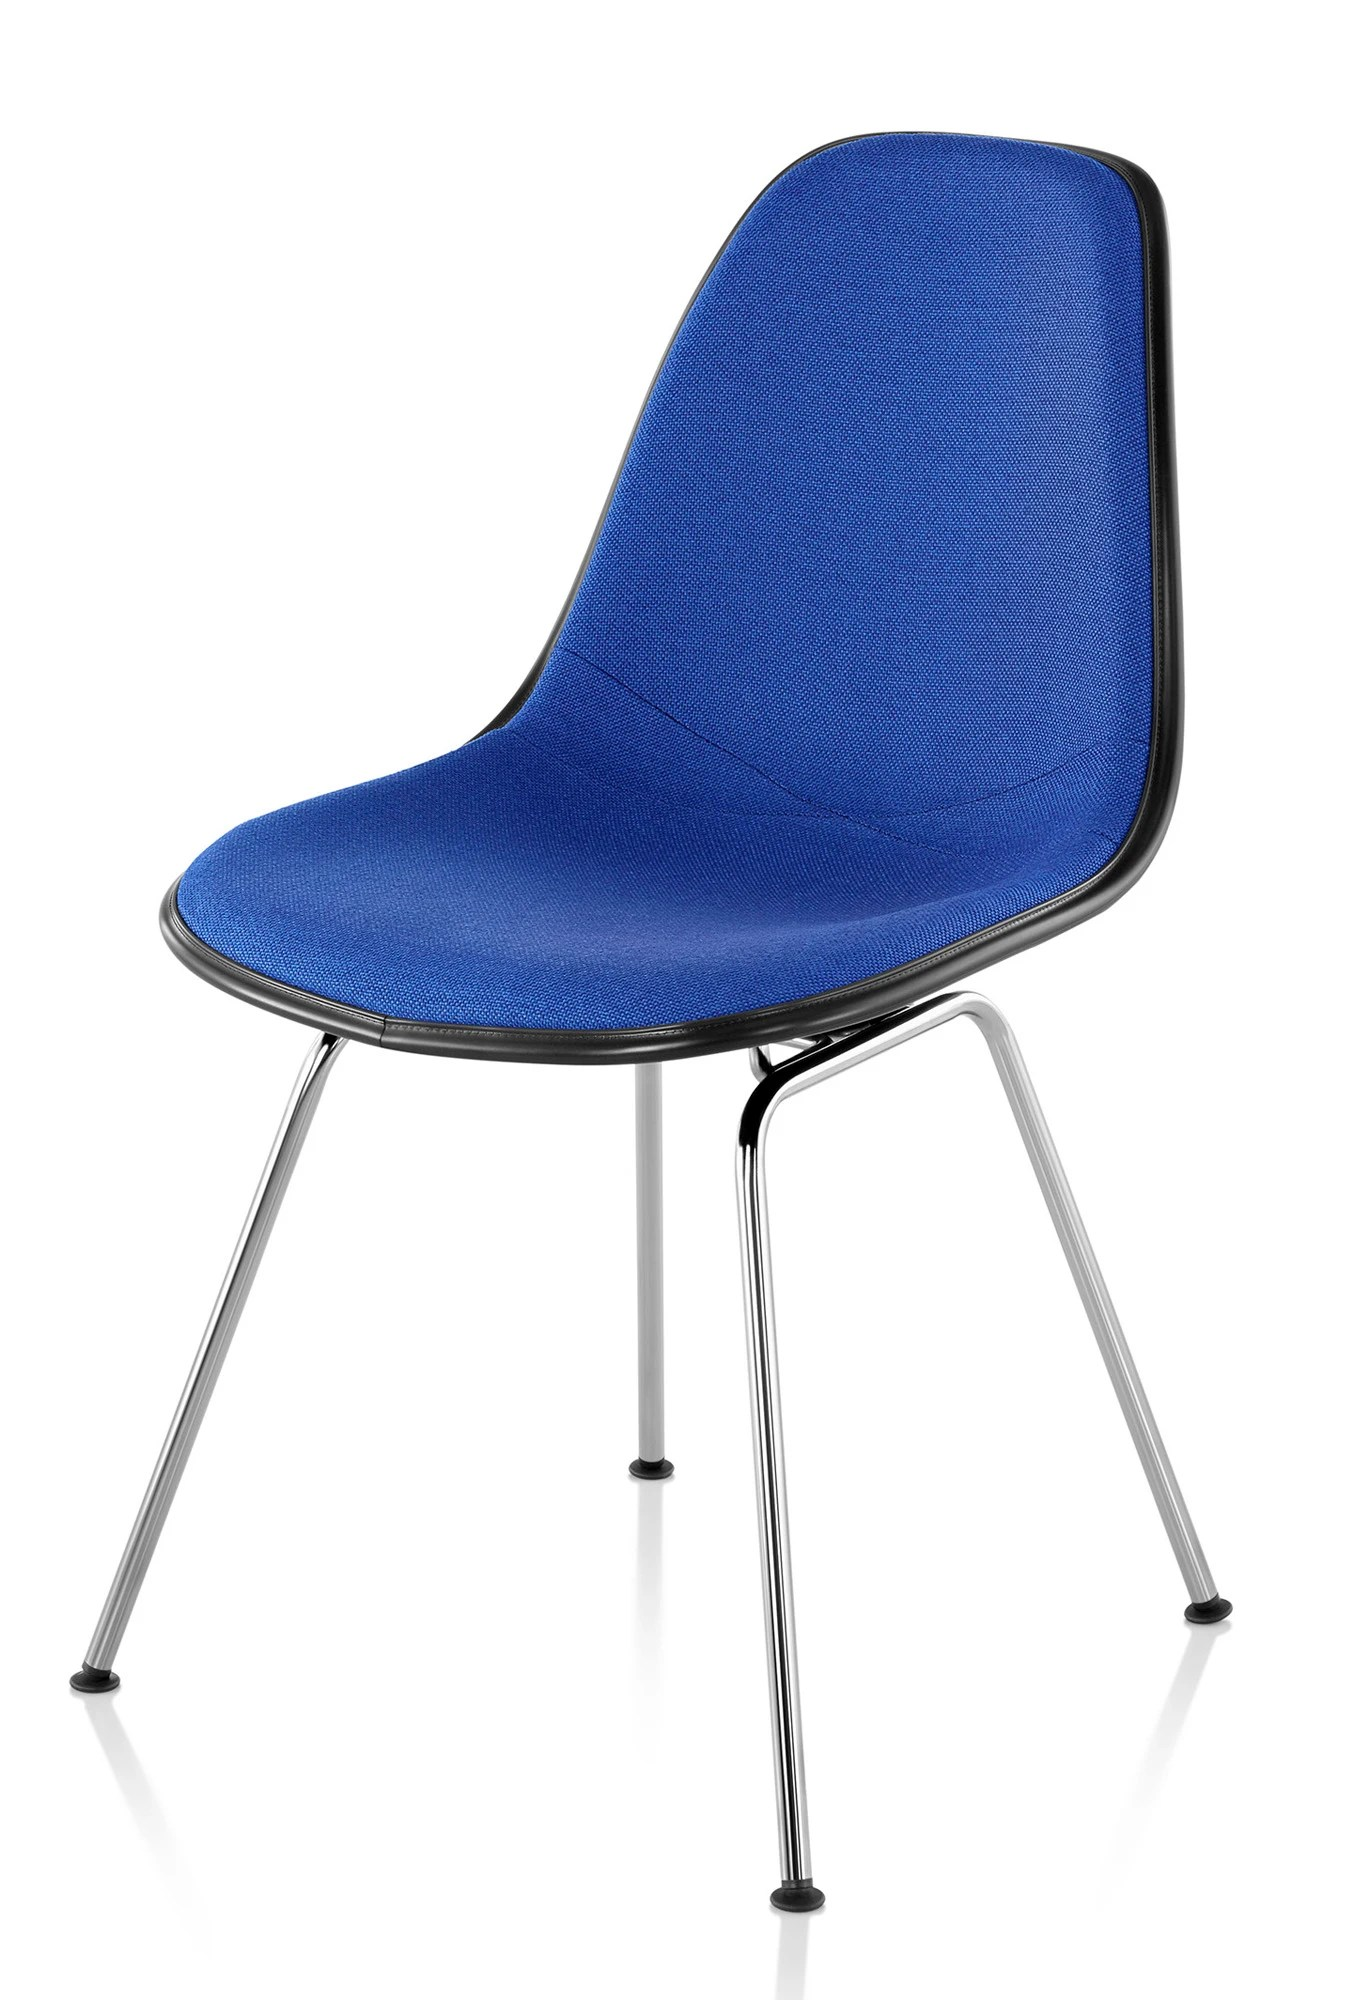 Herman Miller Eamesr Molded Plastic Side Chair Upholstered